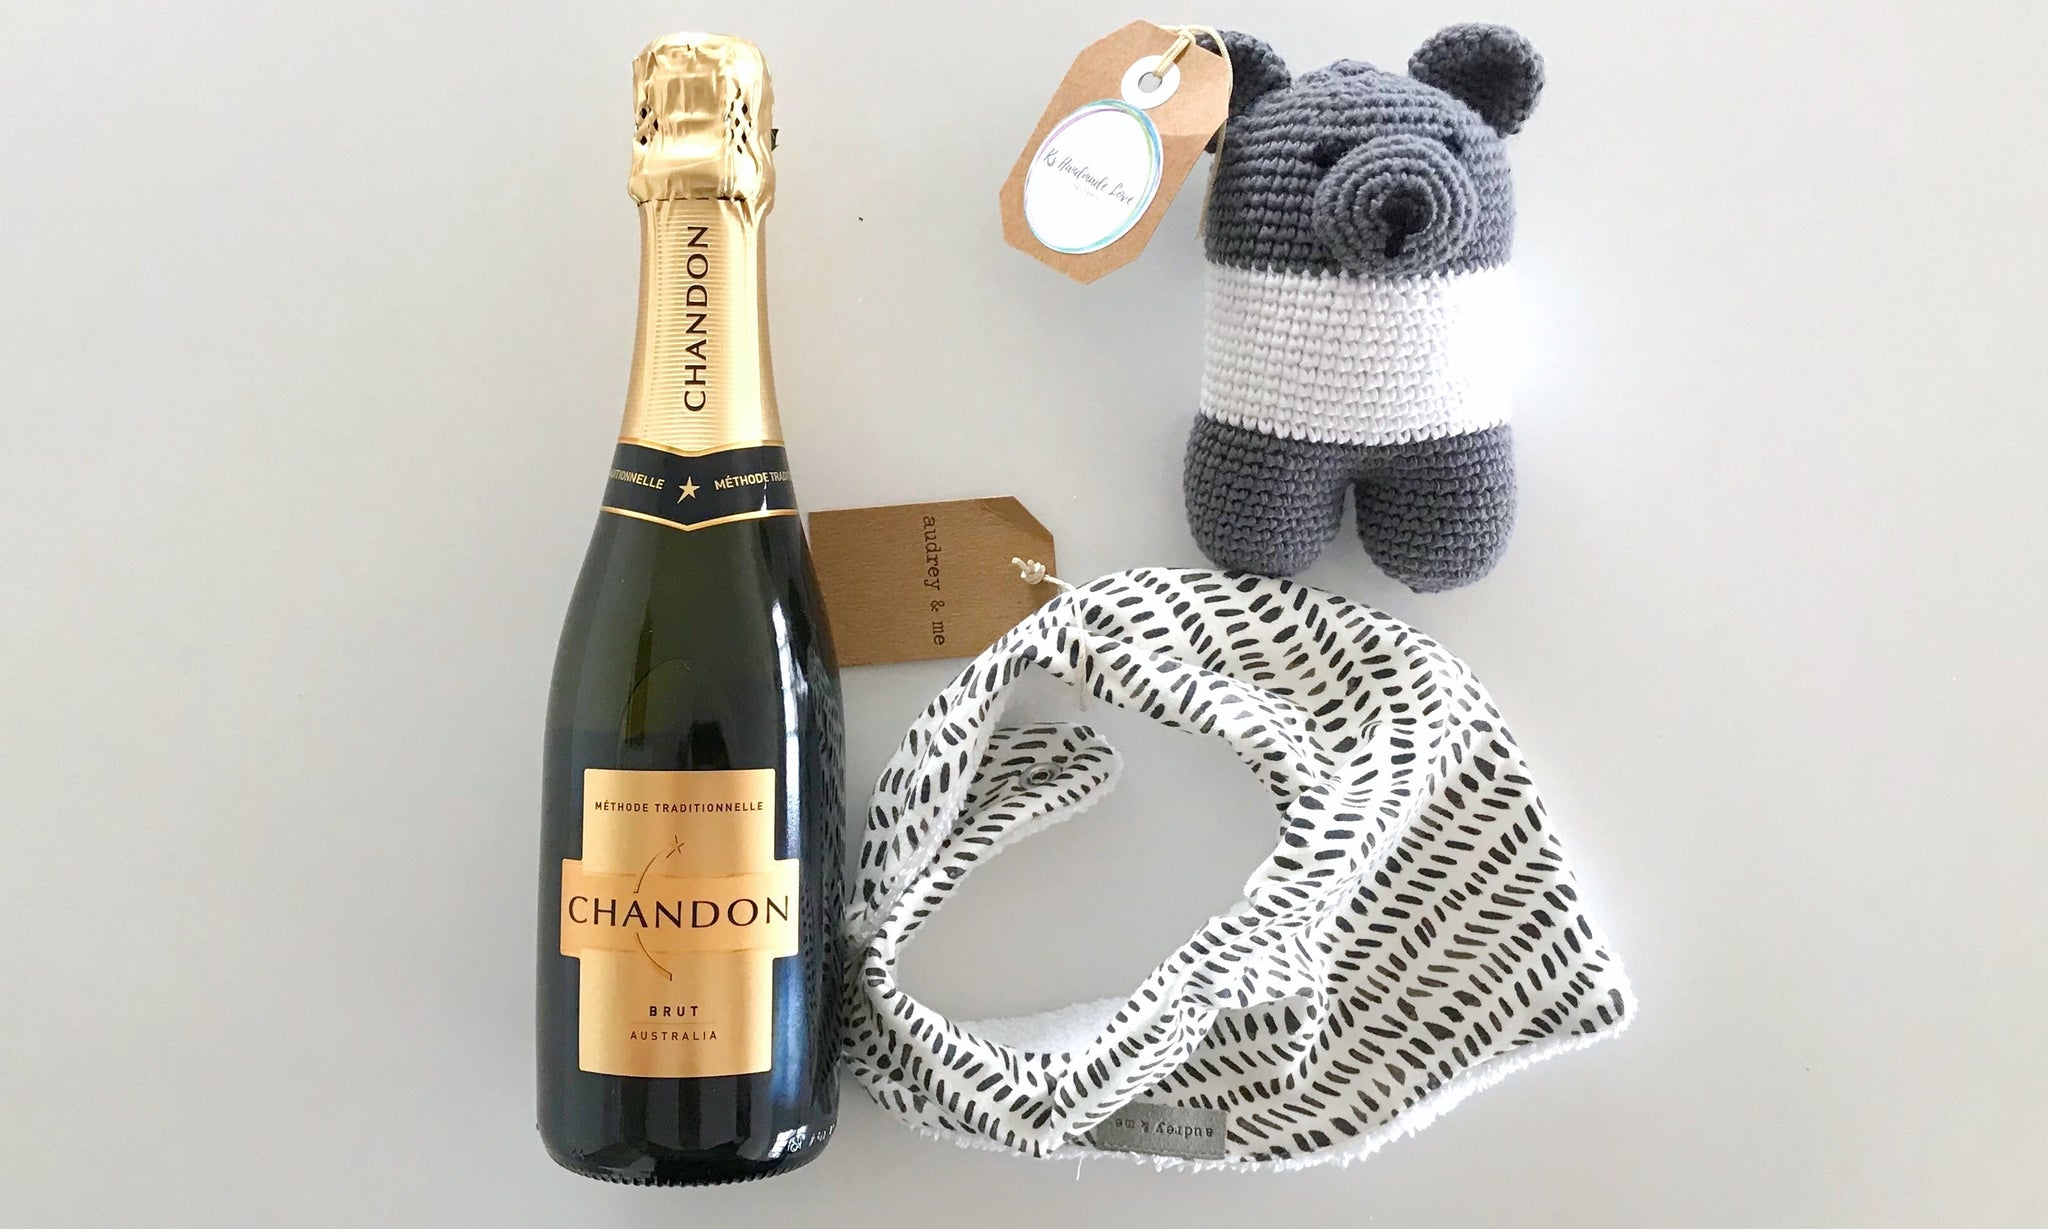 Bespoke bundles stylish baby gift box hampers shipped australia wide bespoke bundles baby gift hampers are thoughtfully created to make mum and baby happy this negle Gallery